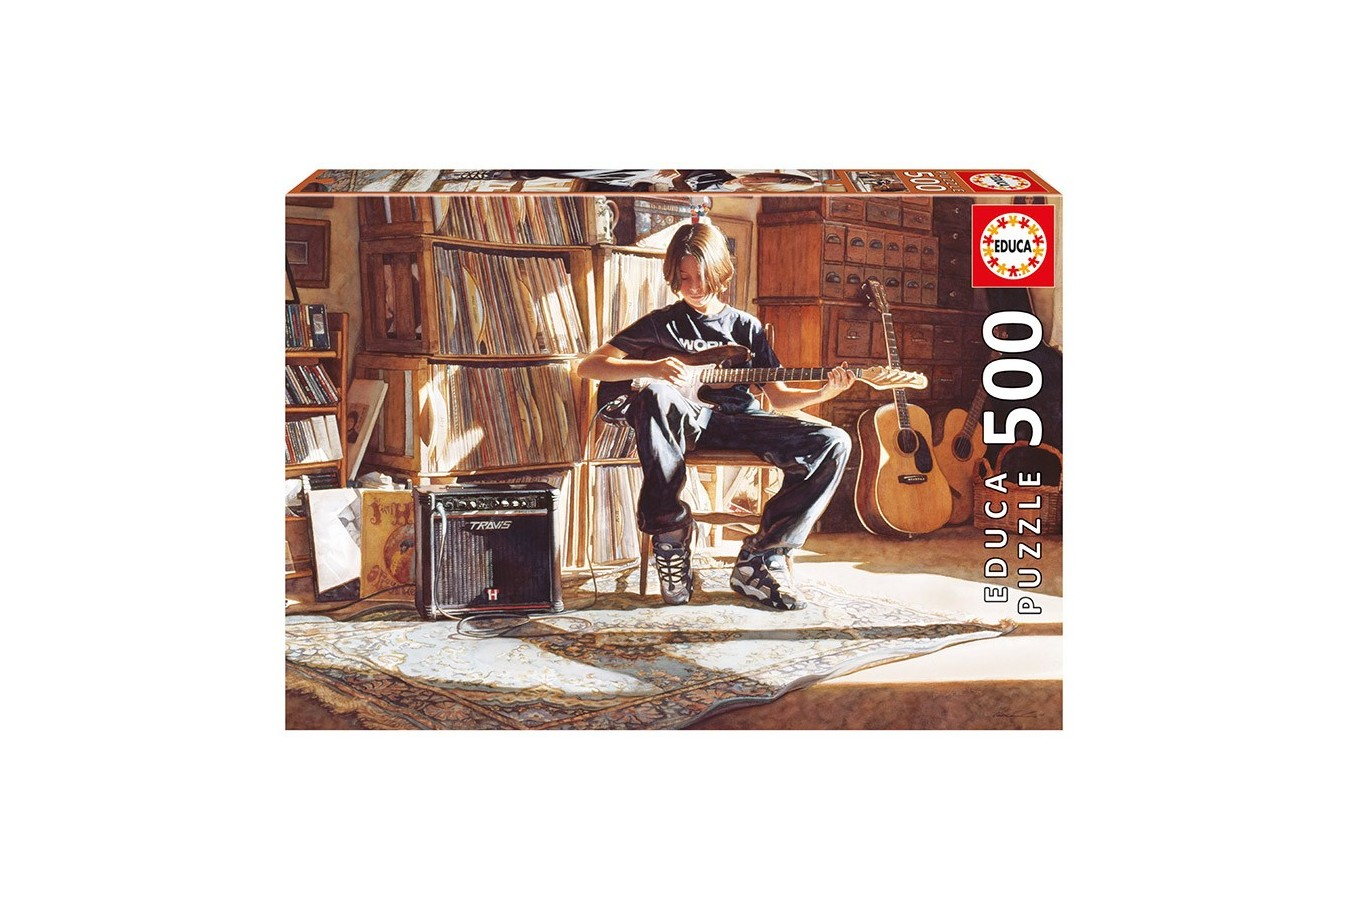 Puzzle Educa - It's his Time Now, 500 piese, include lipici puzzle (16733)